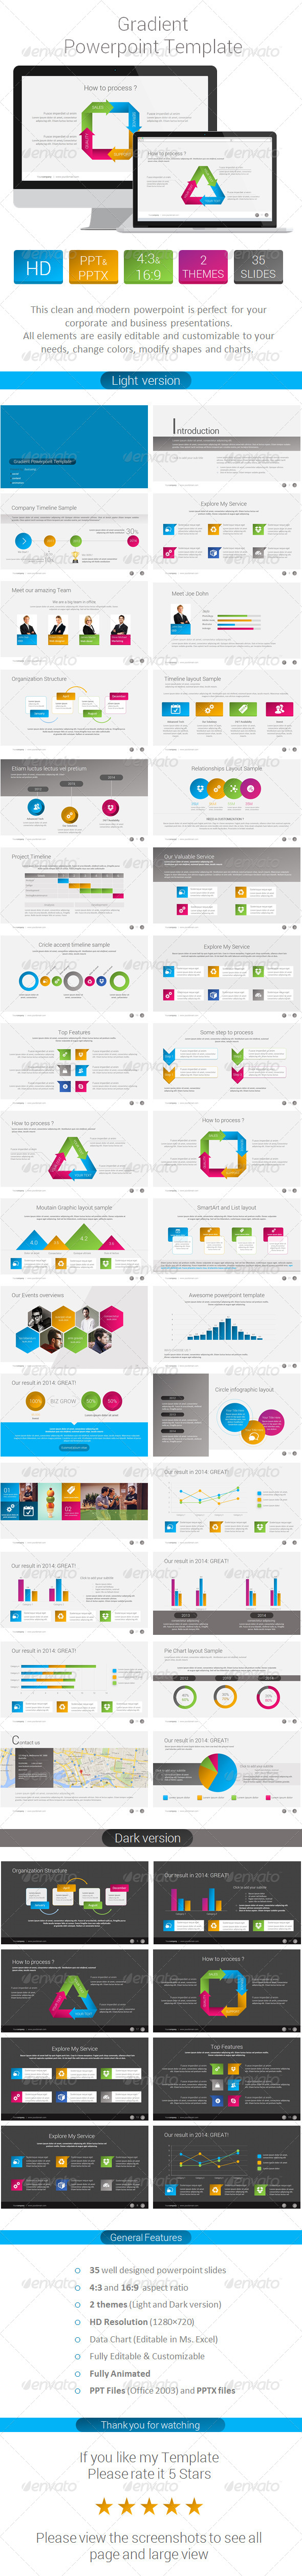 GraphicRiver Gradient Powerpoint Template 7938336